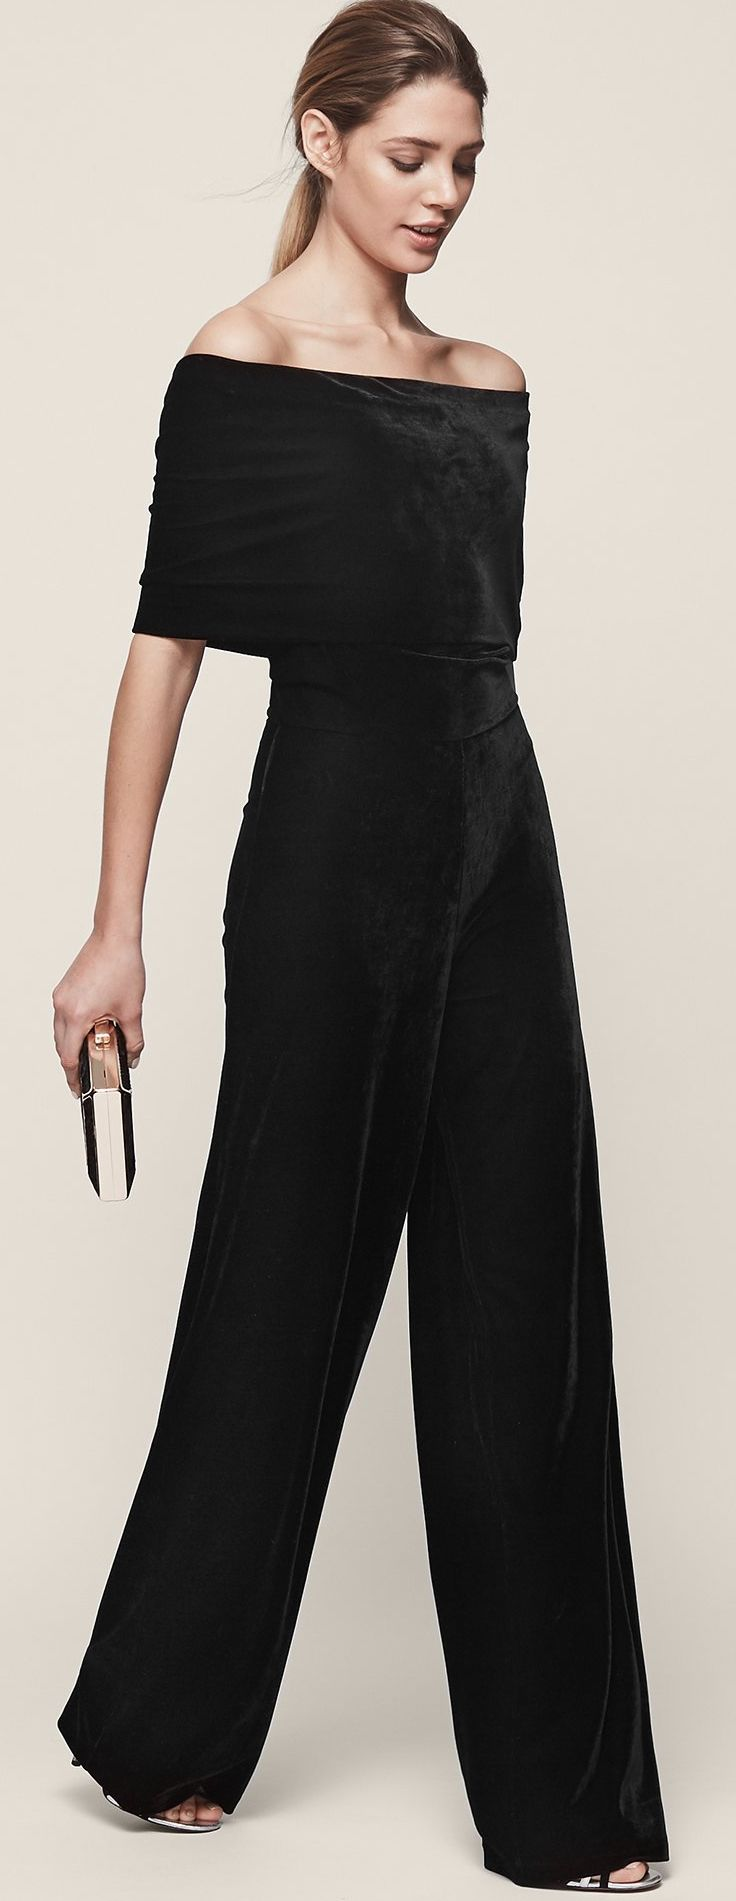 Velvet off shoulder Jumpsuit. £175.00 Nothing says formal winter wear like lush velvet. This amazing Jumpsuit is perfect for a winter wedding. Dress it up with a Contrast Burgundy or jewel tone shrig or faux fur bolero, for winter glamour. Fashion forward winter wedding style ideas and inspiration. #fashion #fashionista #fashionaddict #velvet #jumpsuits #winterwedding #affiliatelink #ootd